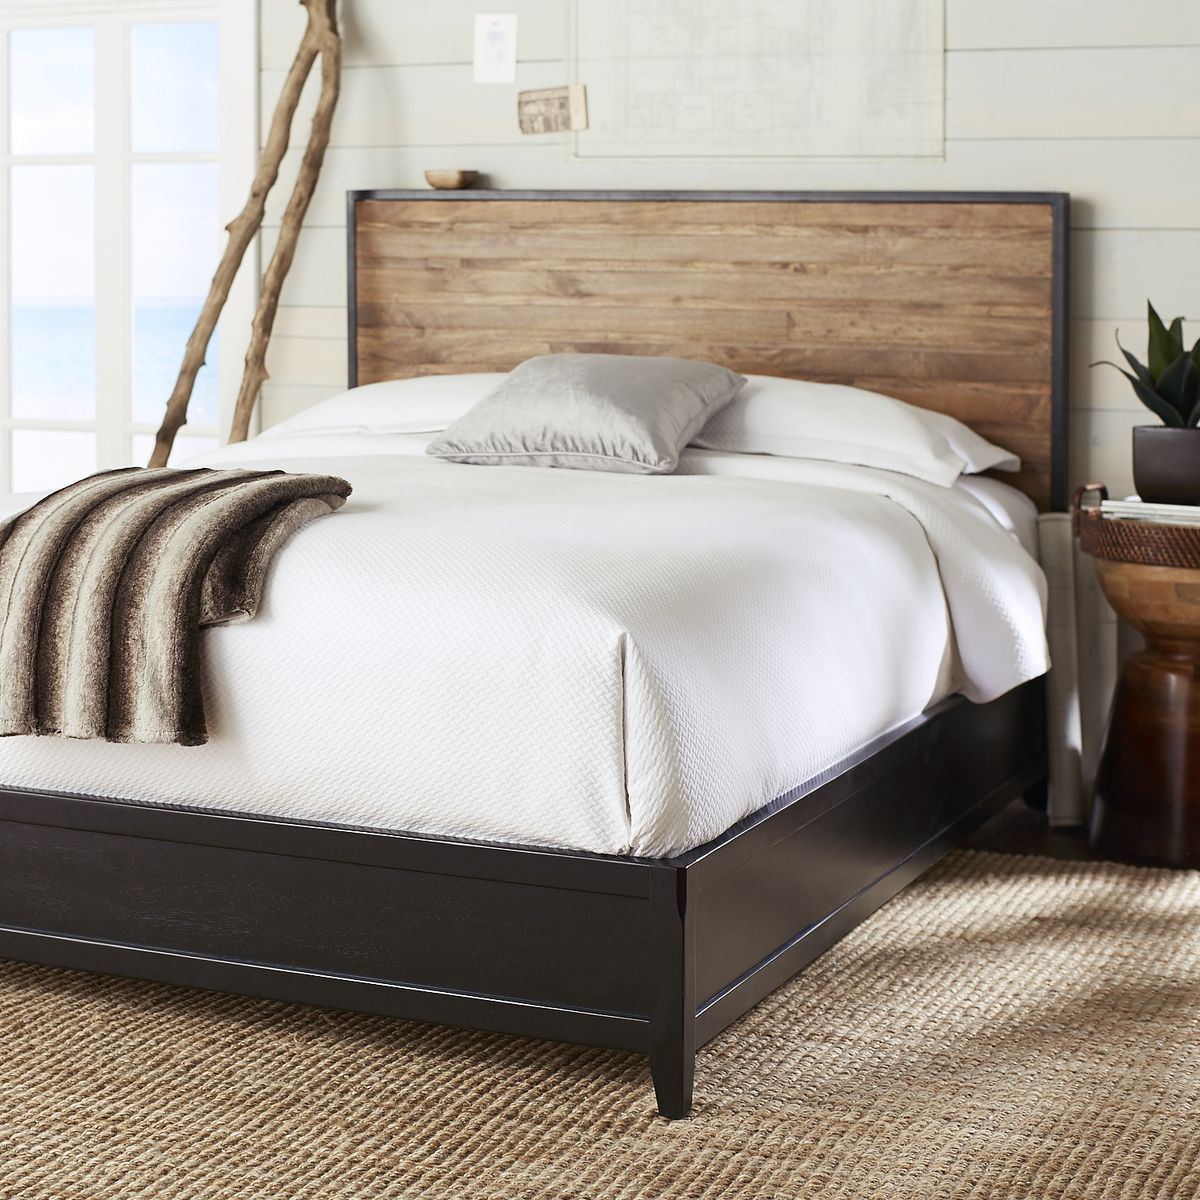 Blake Queen Bed Frame Rubbed Black Pier 1 Imports Queen Bed